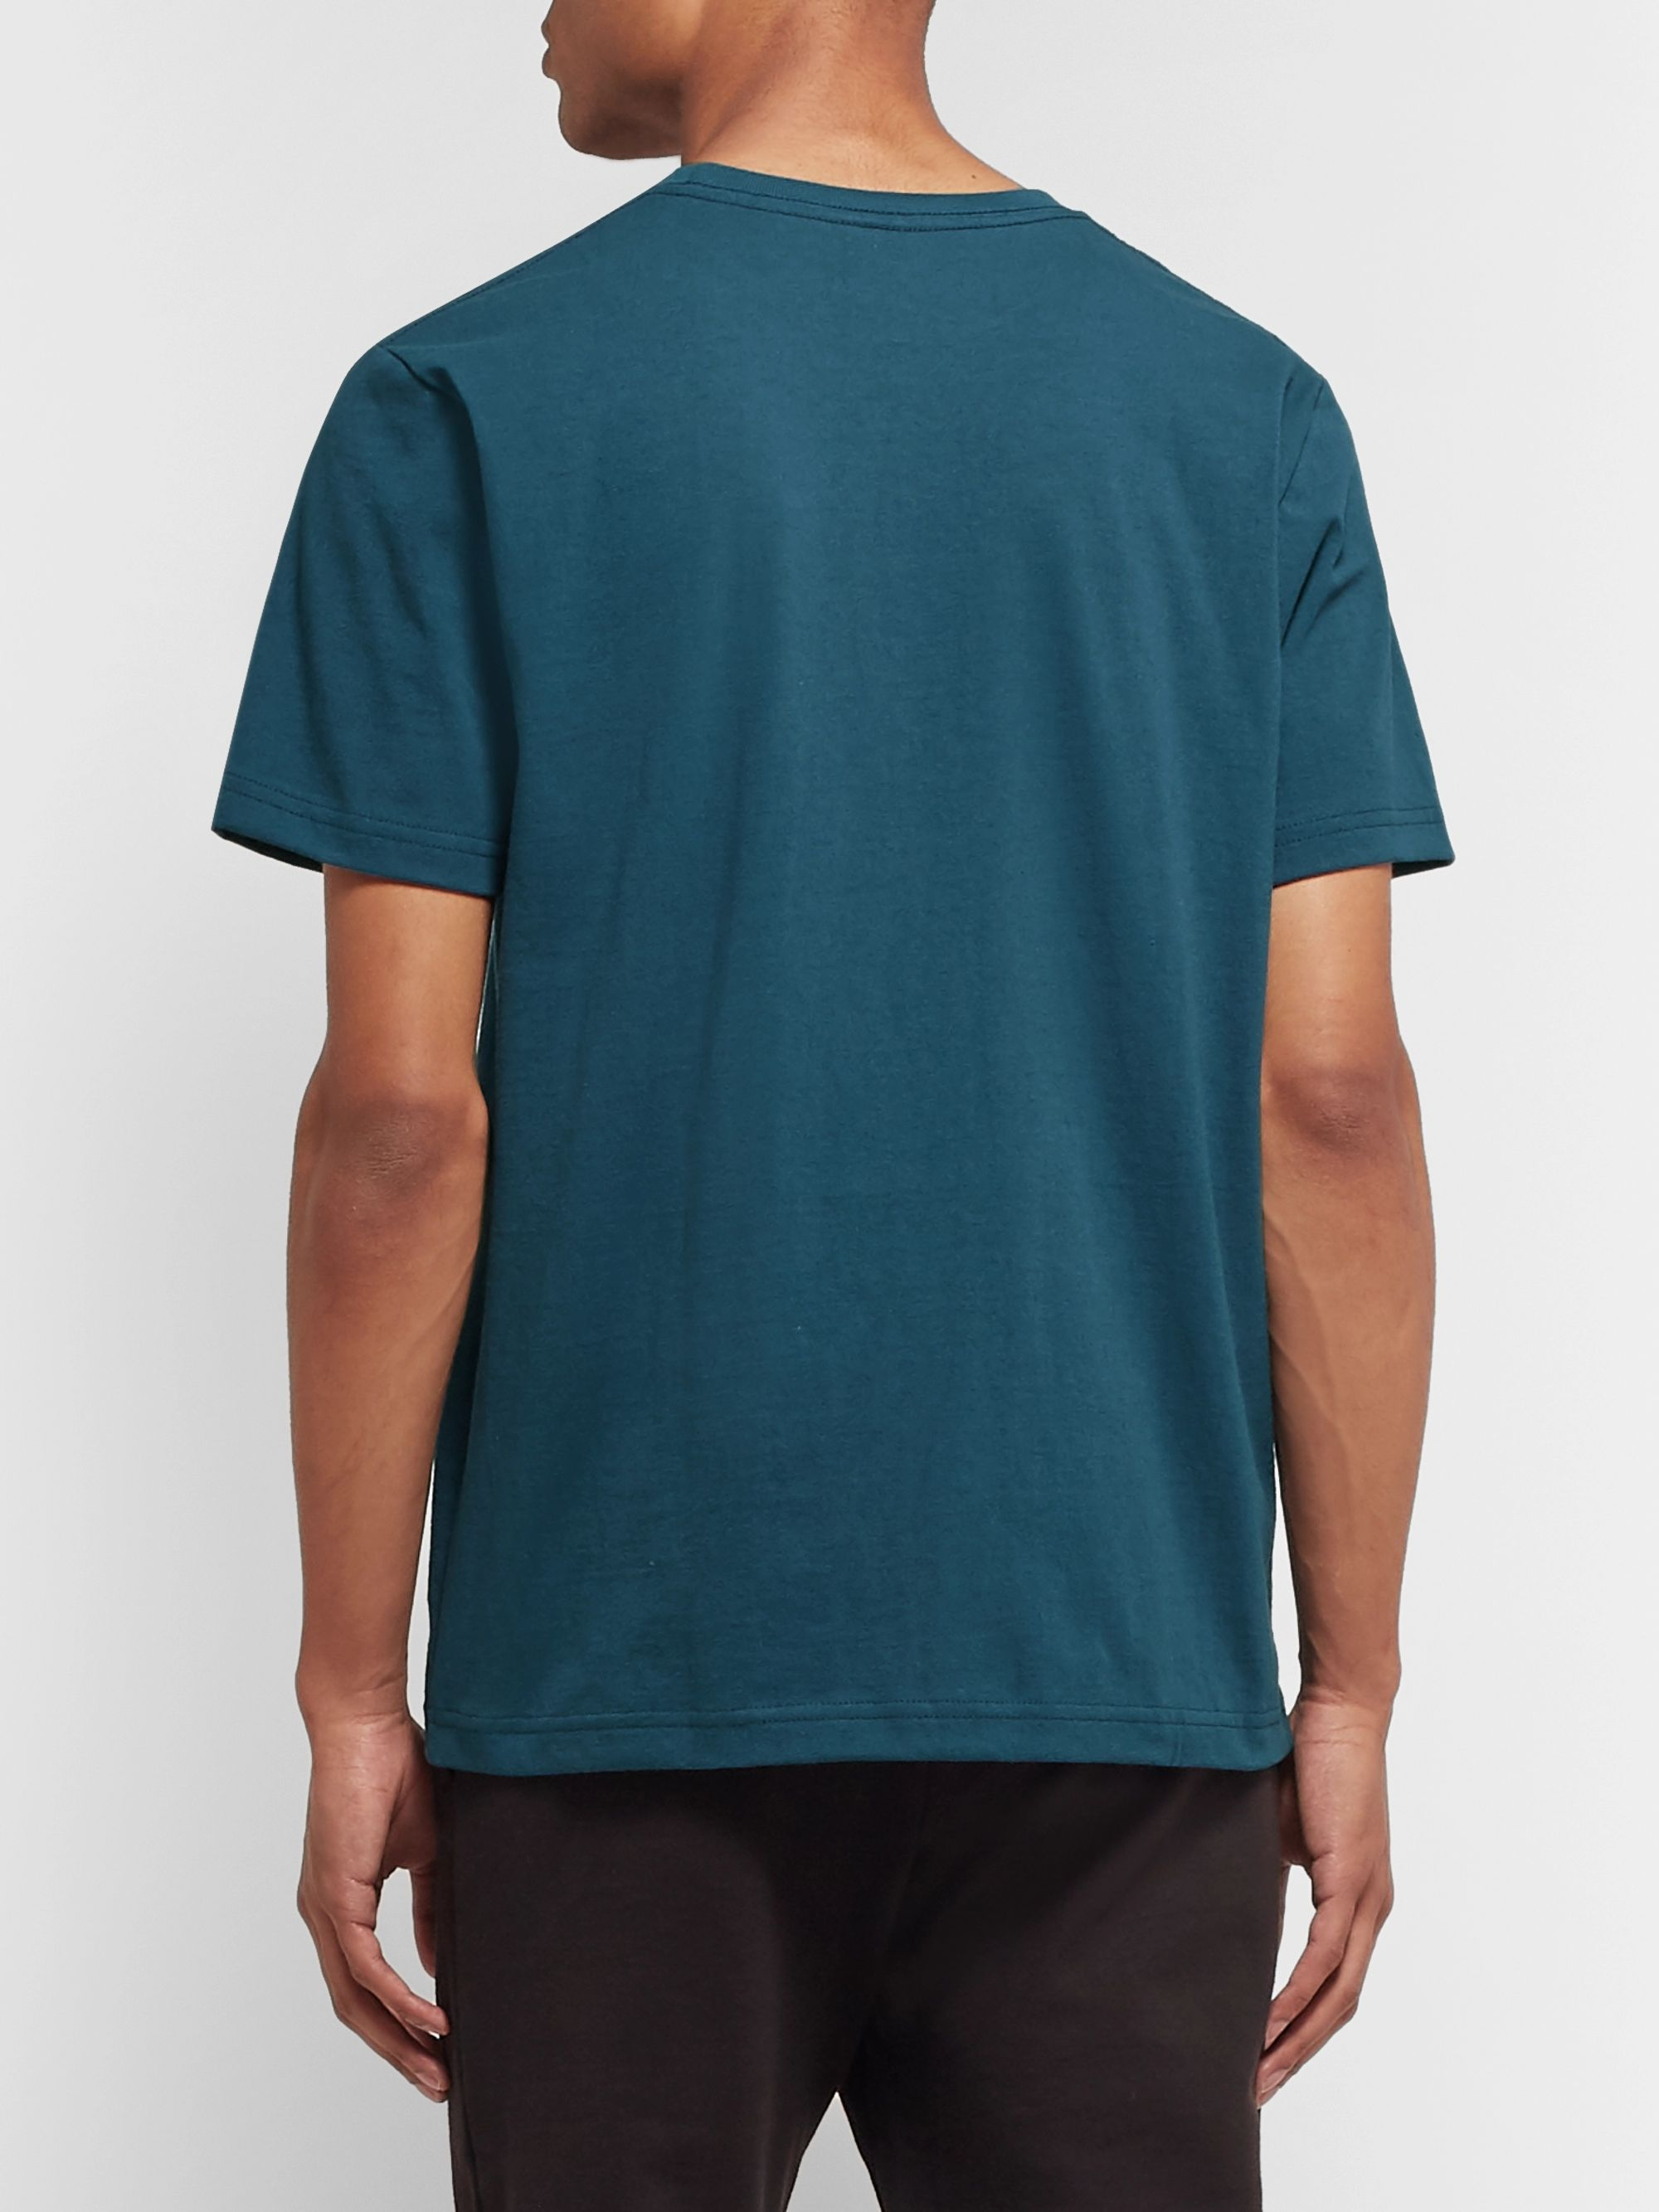 A.P.C. Blake Printed Cotton-Jersey T-Shirt